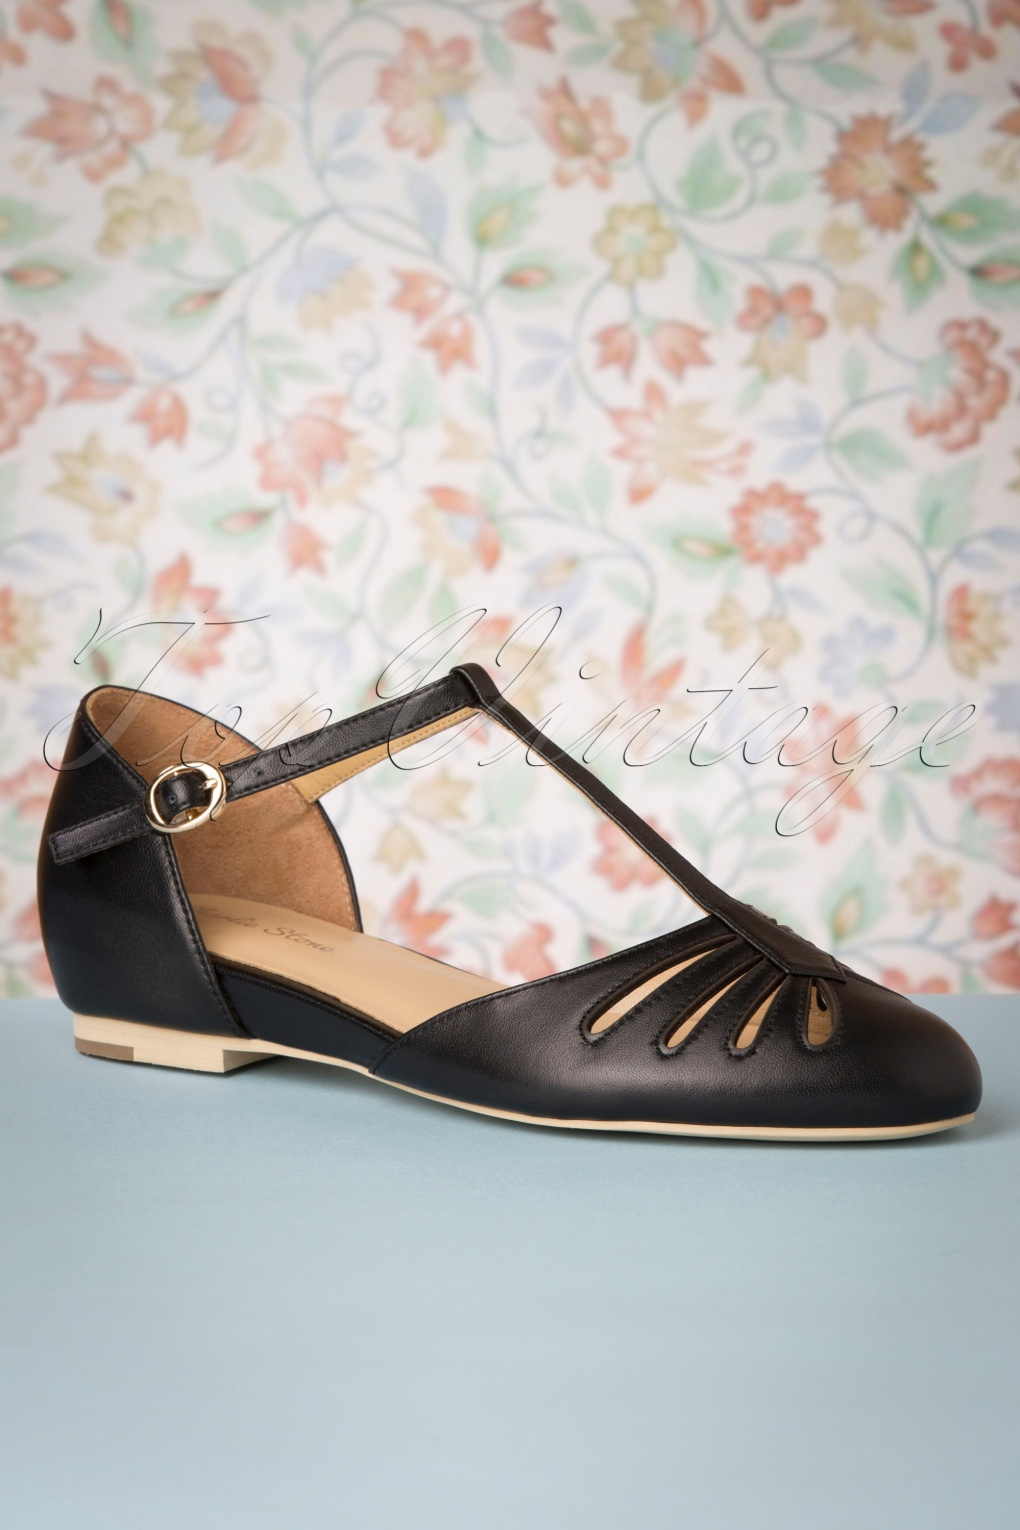 Vintage Heels, Retro Heels, Pumps, Shoes 50s Singapore T-Strap Flats in Black £104.32 AT vintagedancer.com